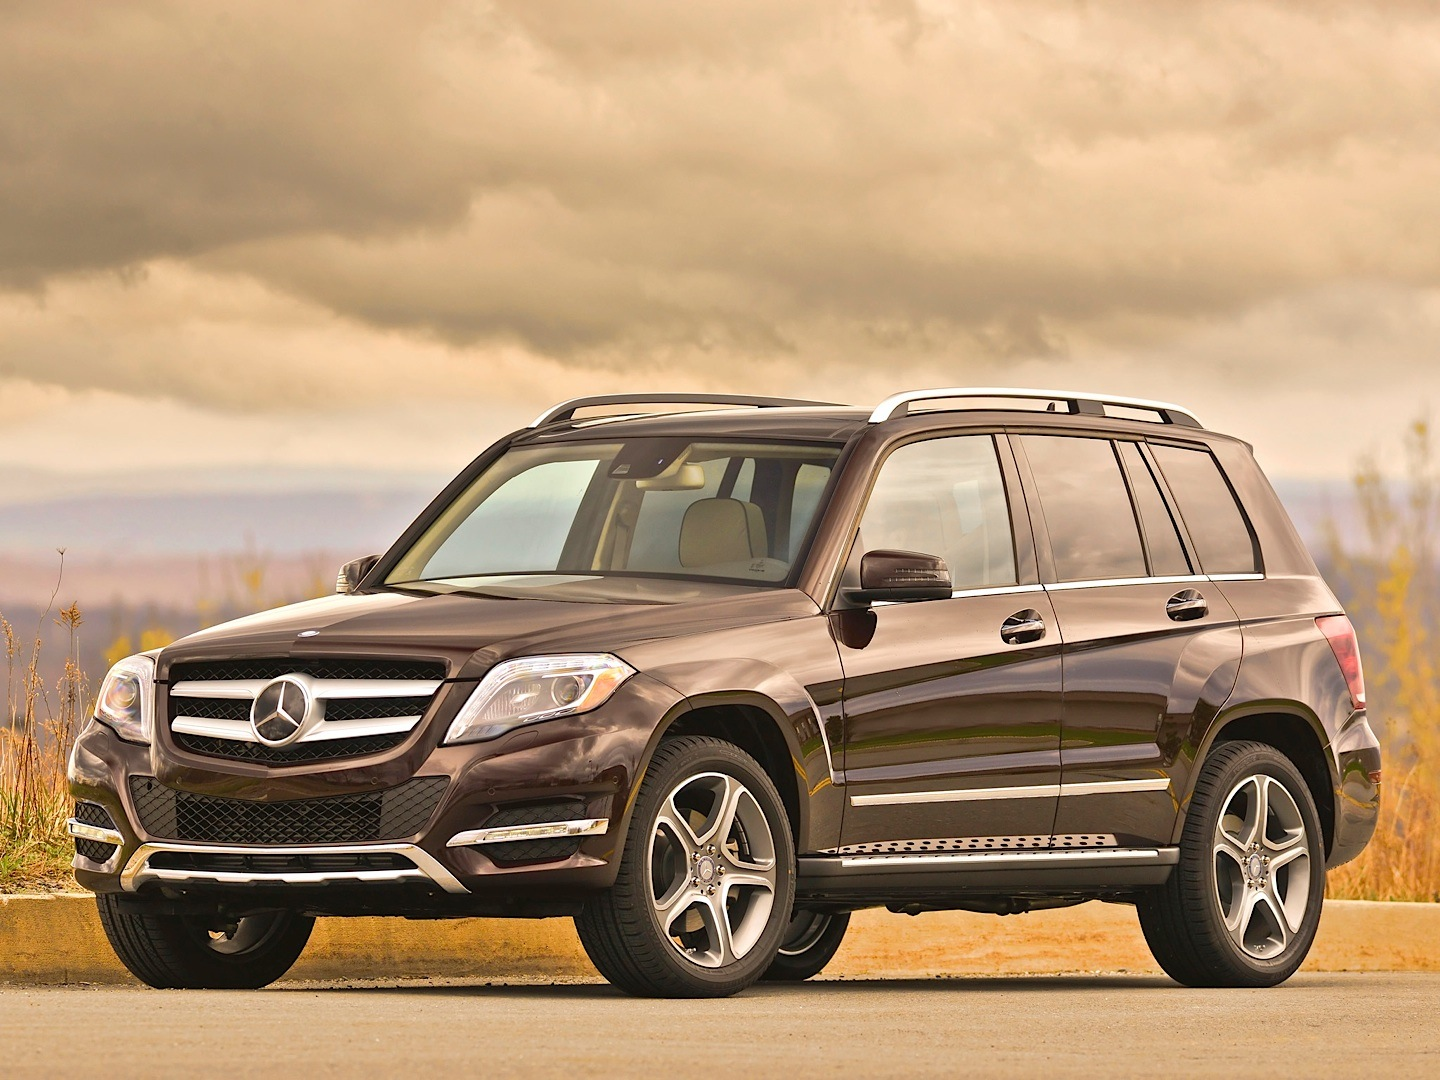 Mb usa releases 2014 glk experience commercial for Usa mercedes benz